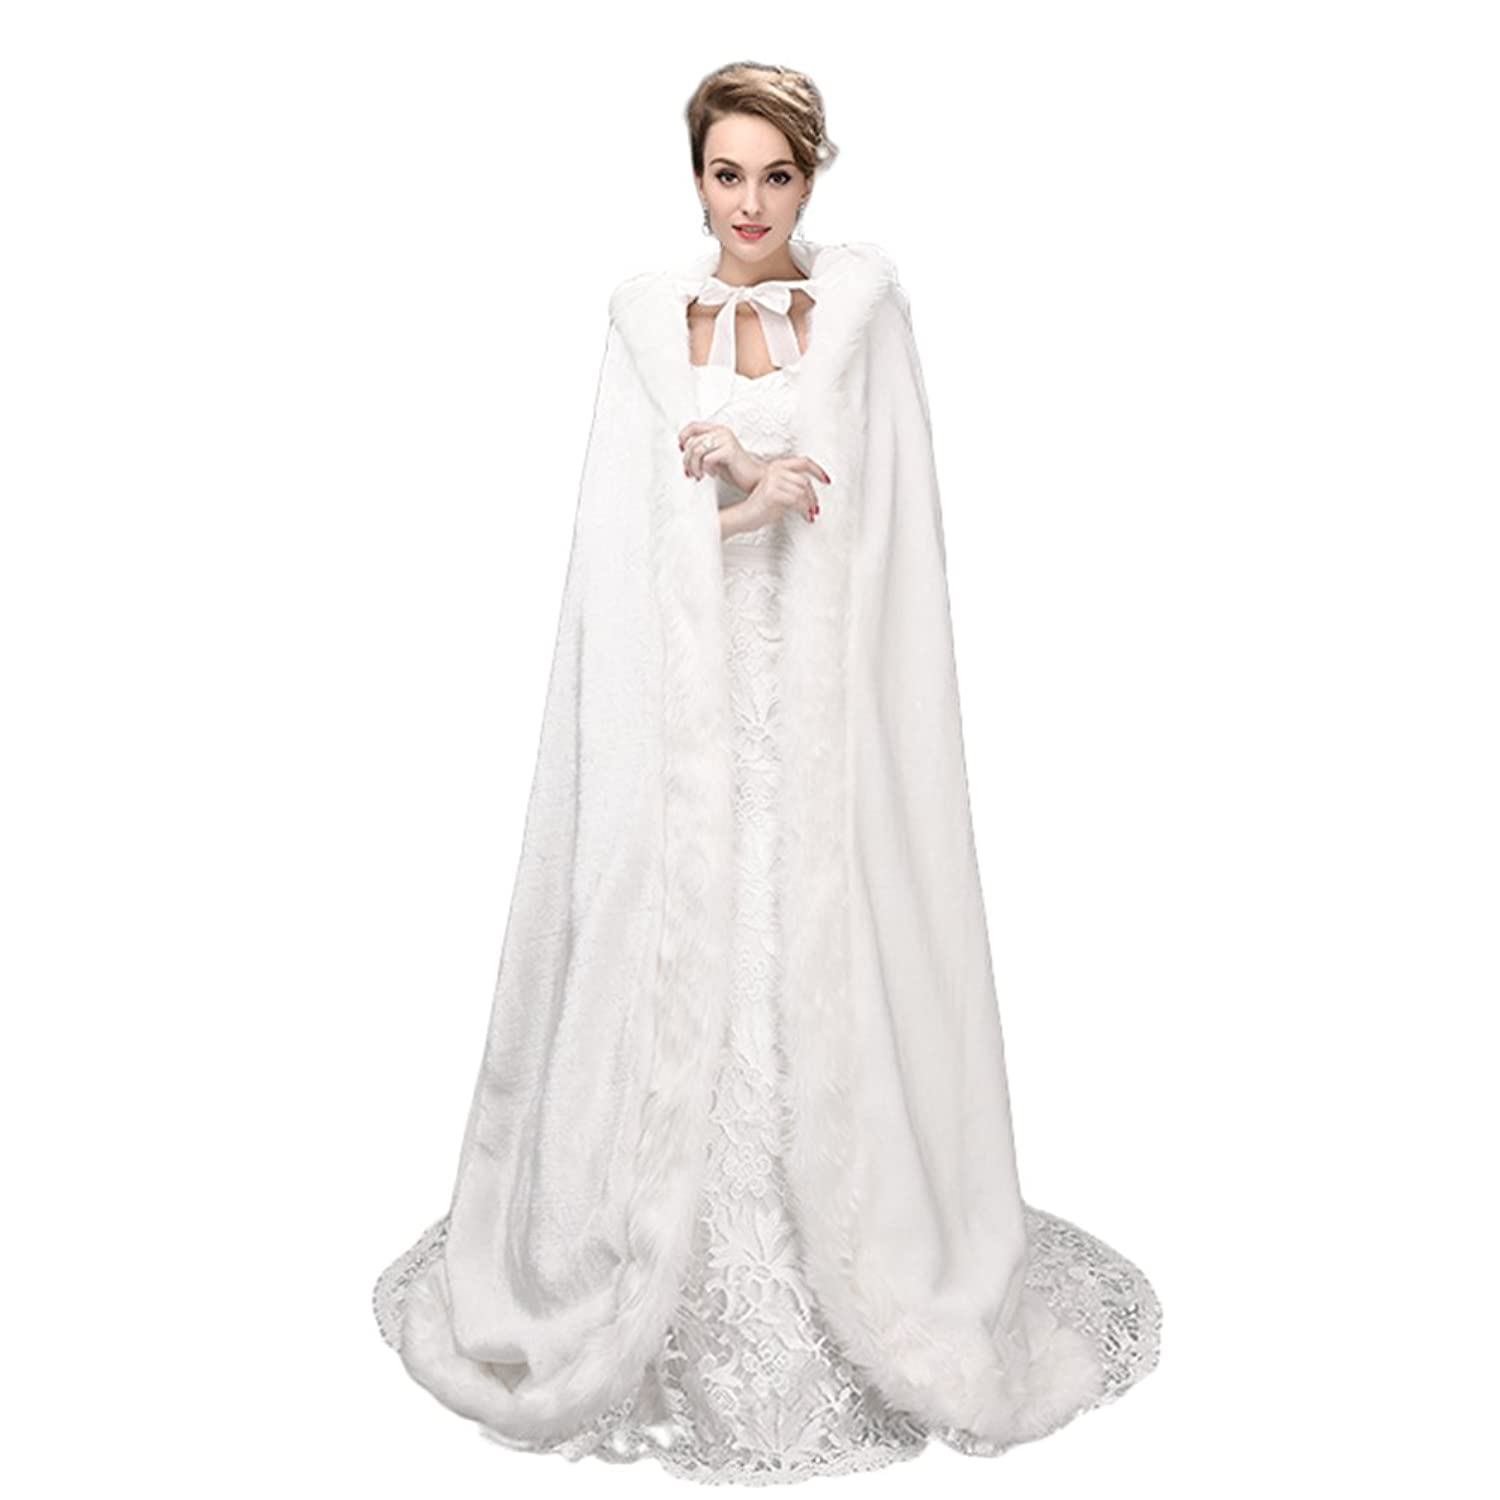 Hooded Cloak Bridal Cape With Faux Fur Trim Full Length White Halloween